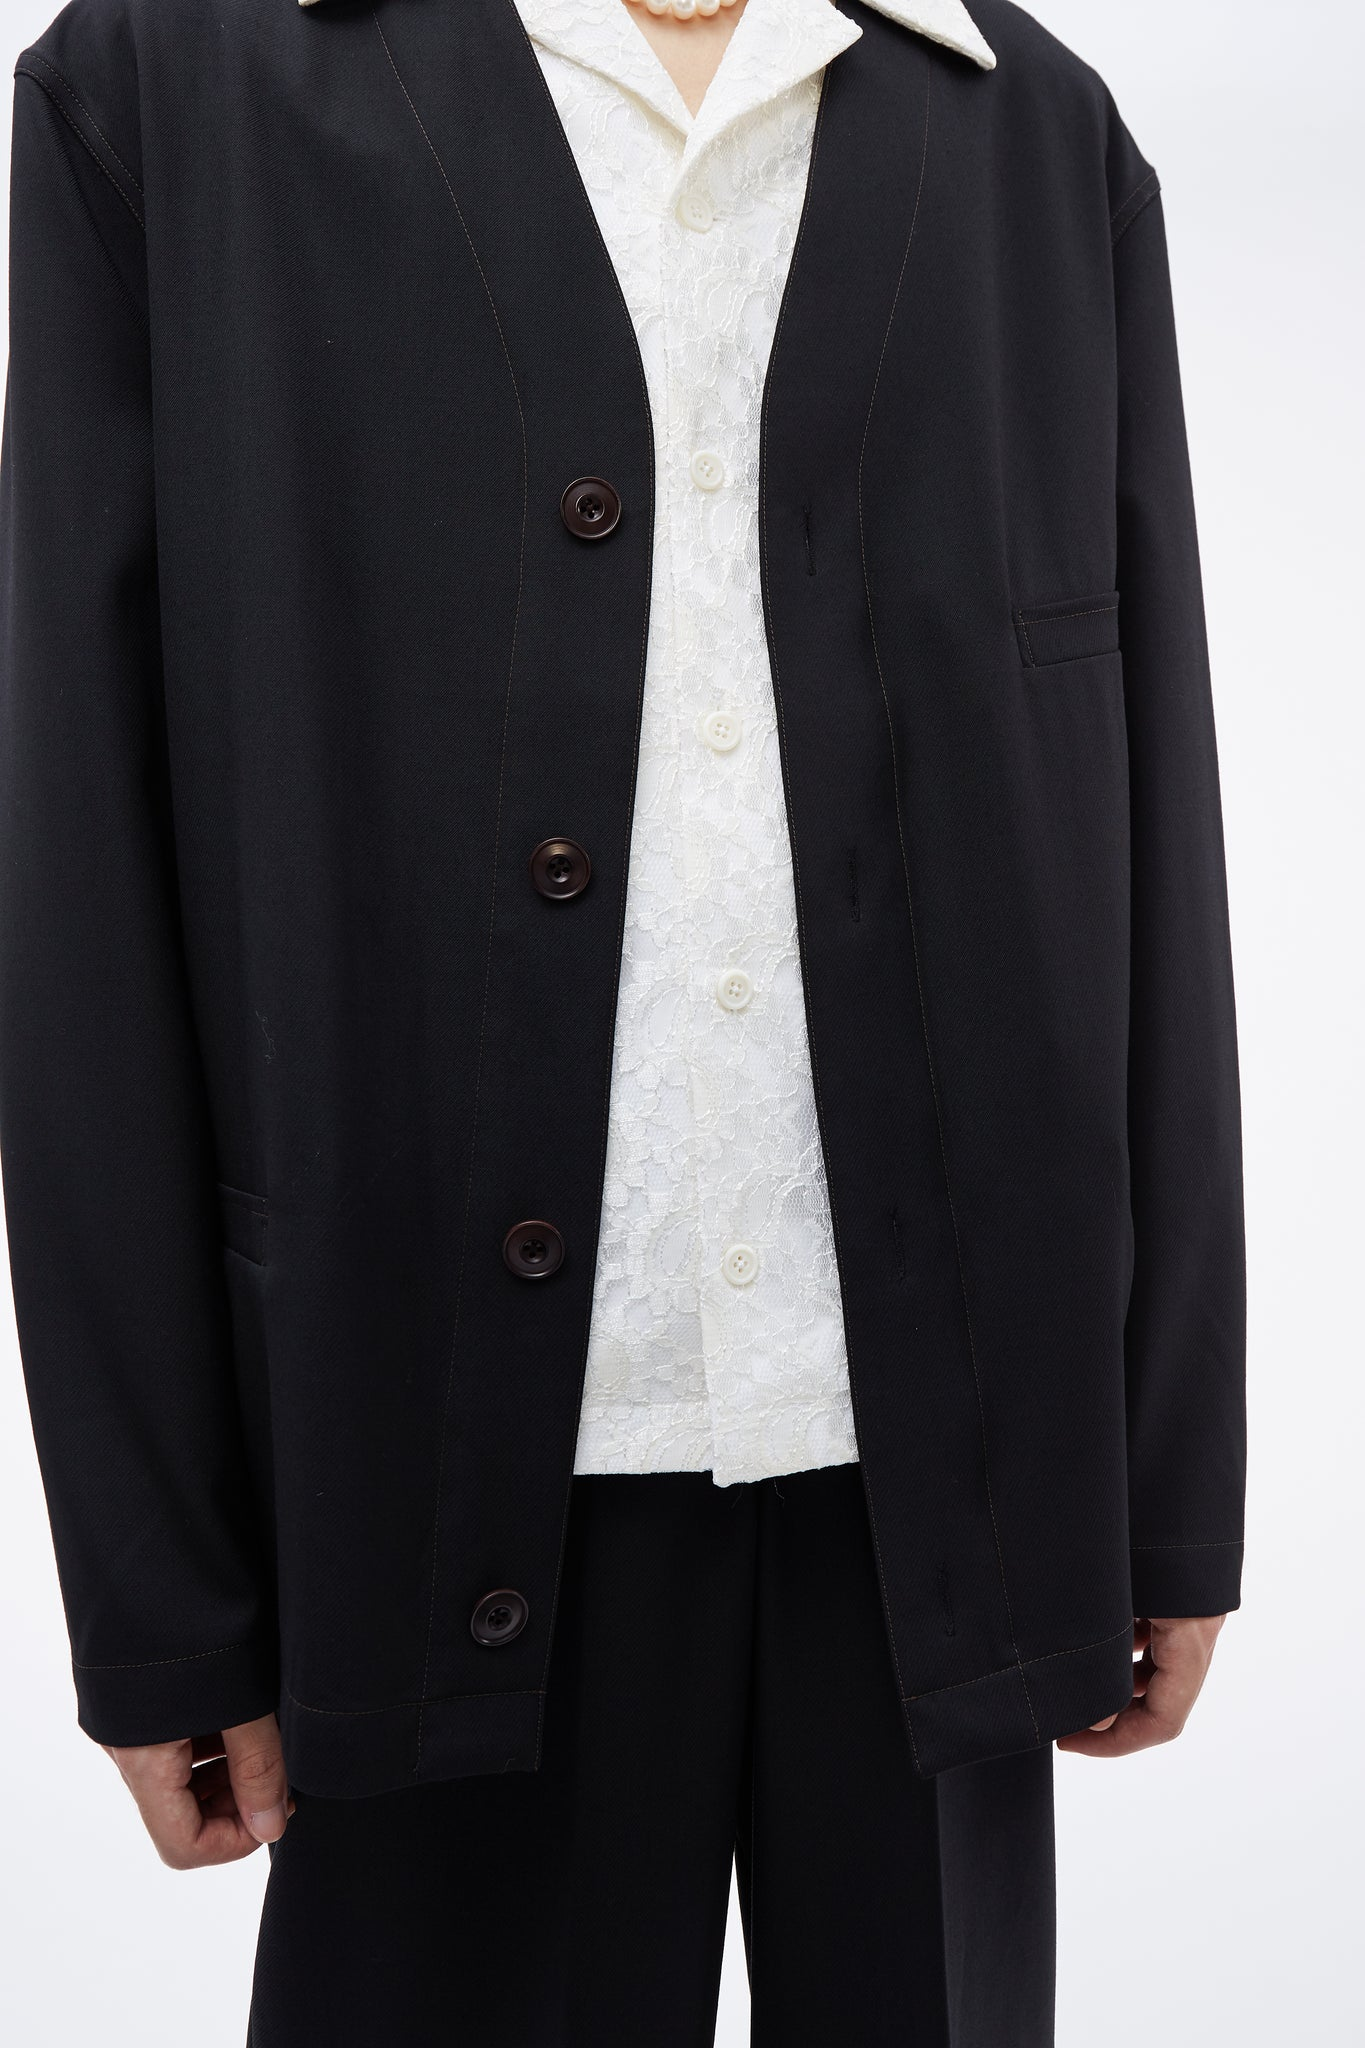 V-neck Jacket Black